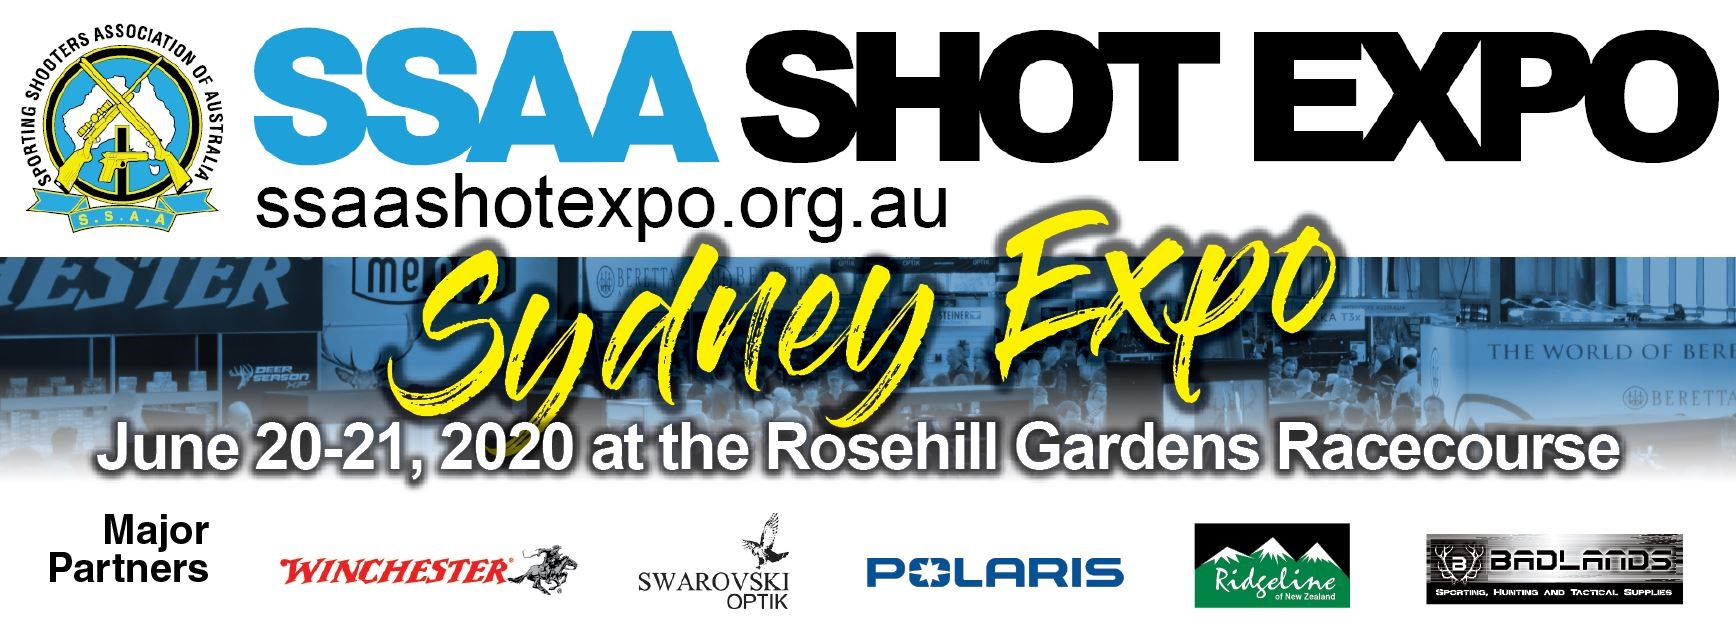 Tickets for SSAA SHOT Expo Sydney 2020 in Rosehill from Ticketbooth